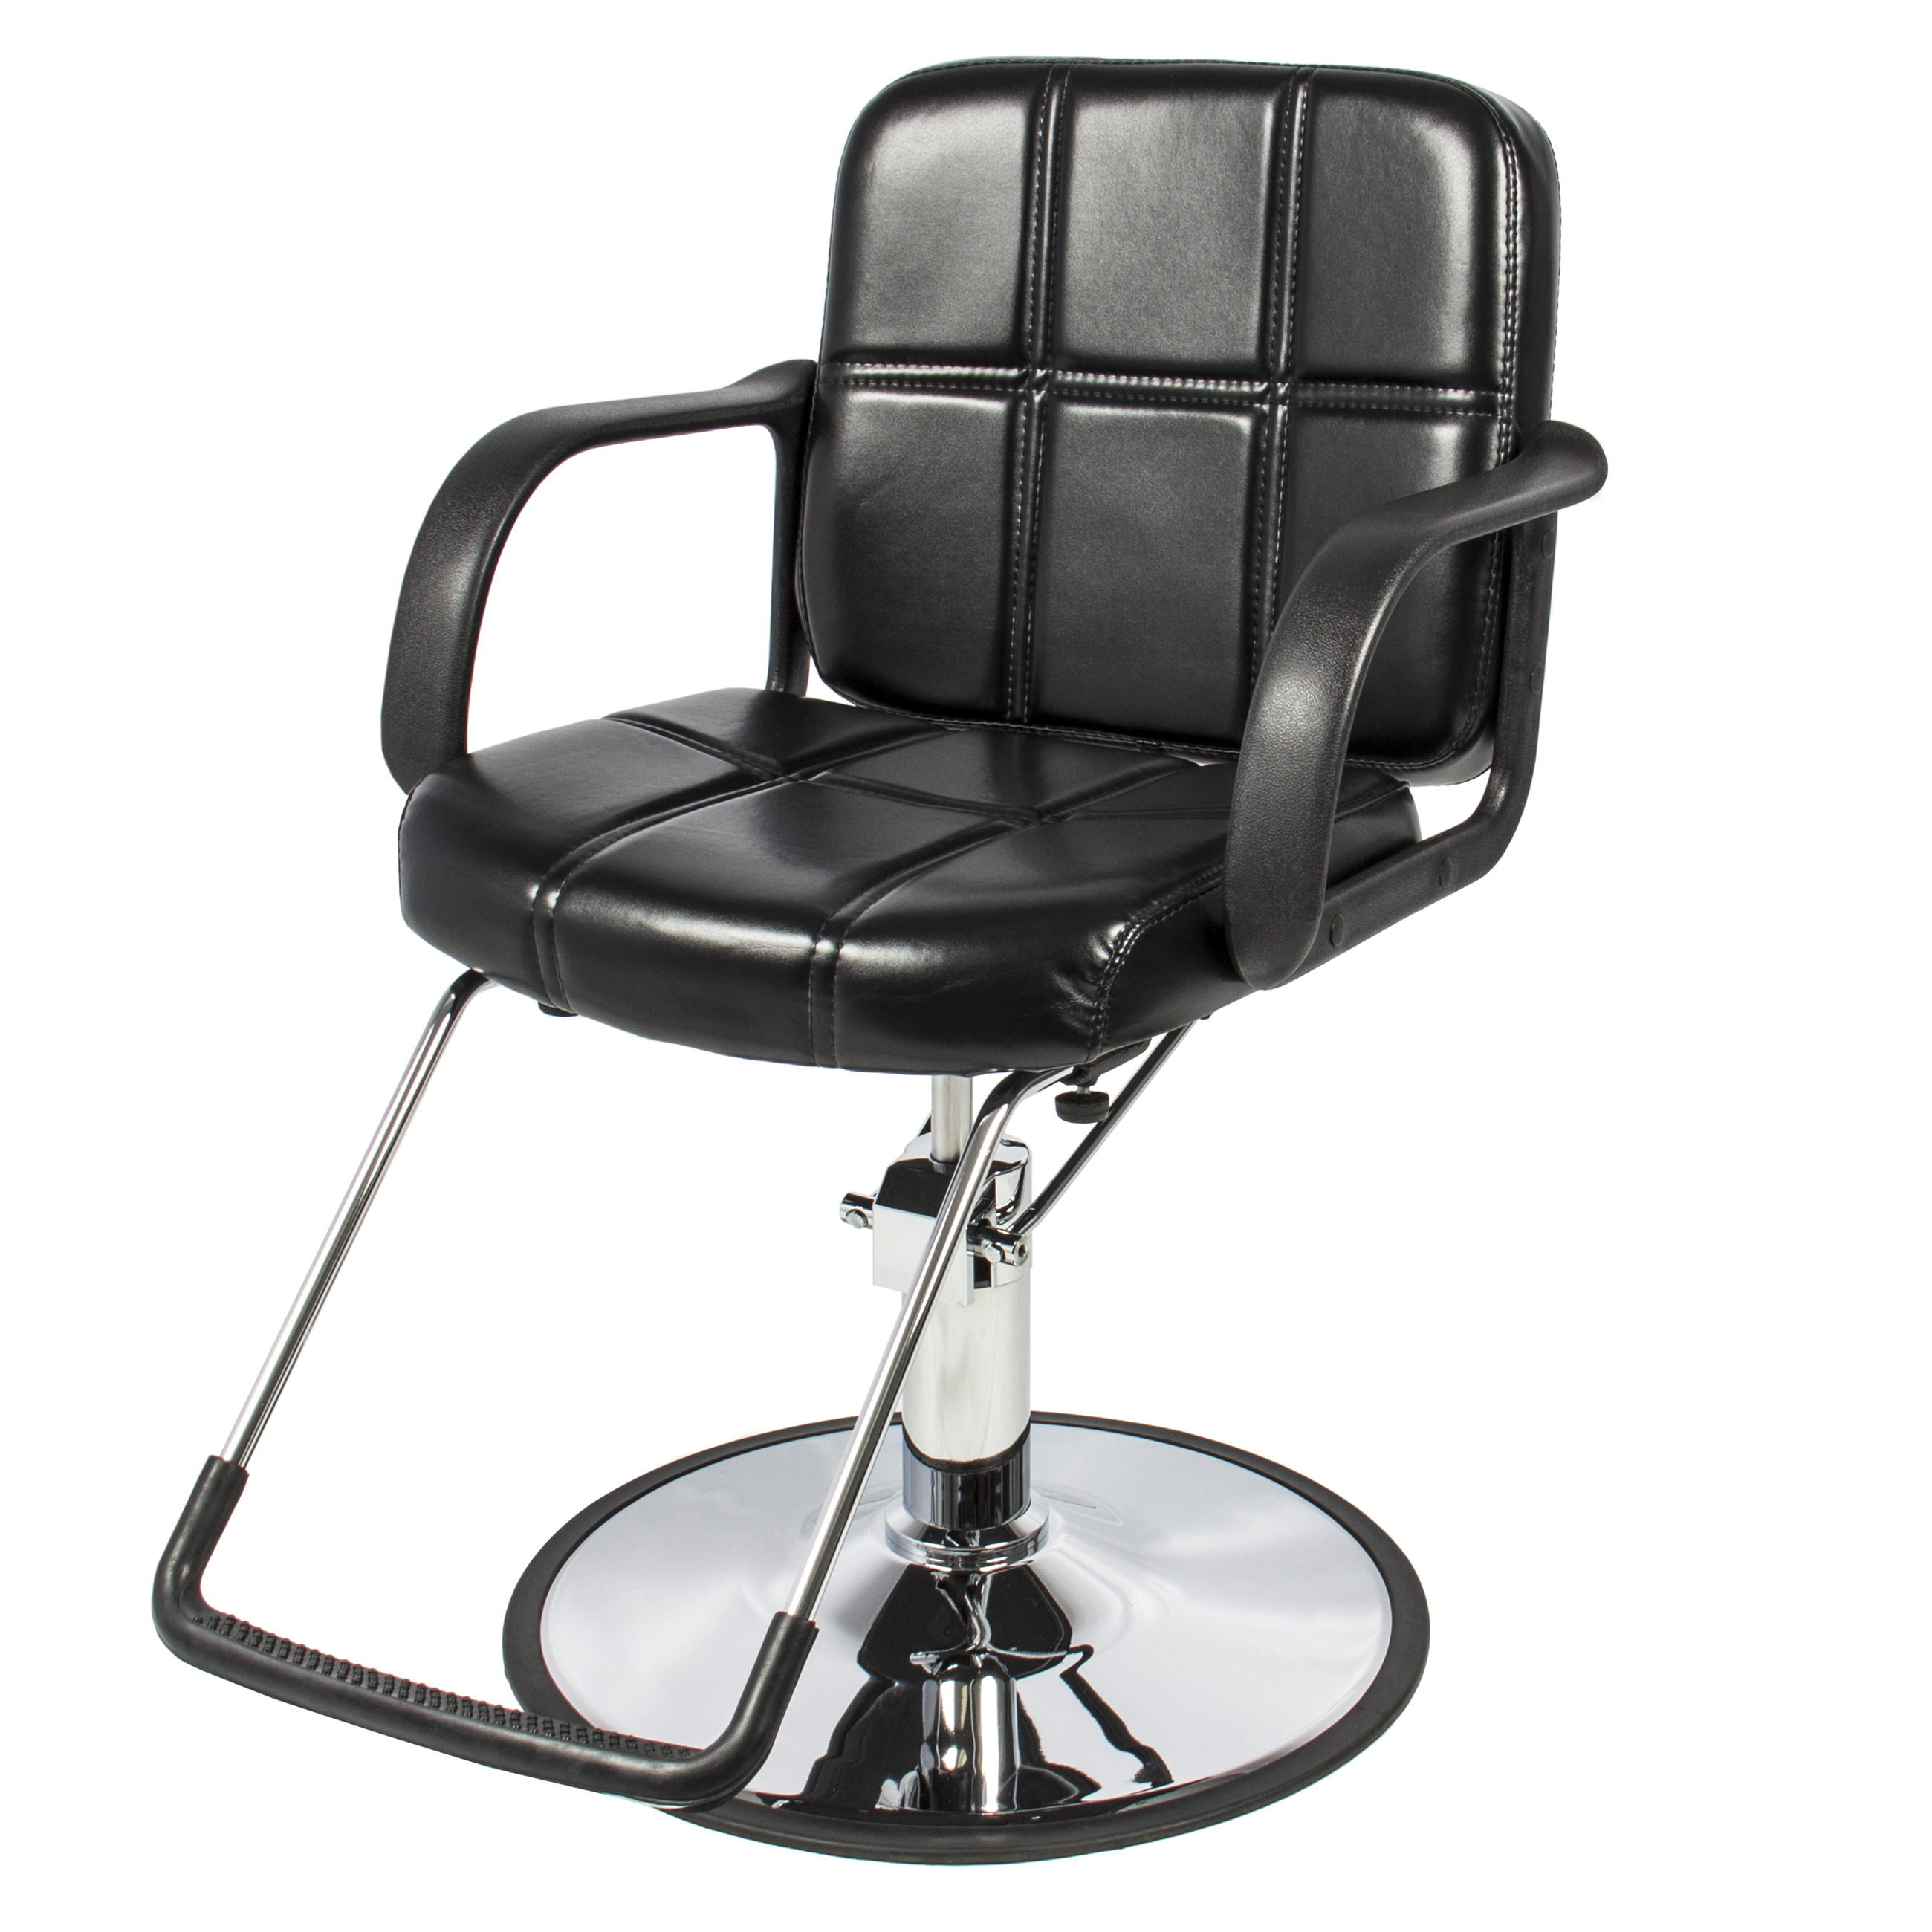 Facial Massage Salon Bed Spa Chair Tattoo Massage Bed Table